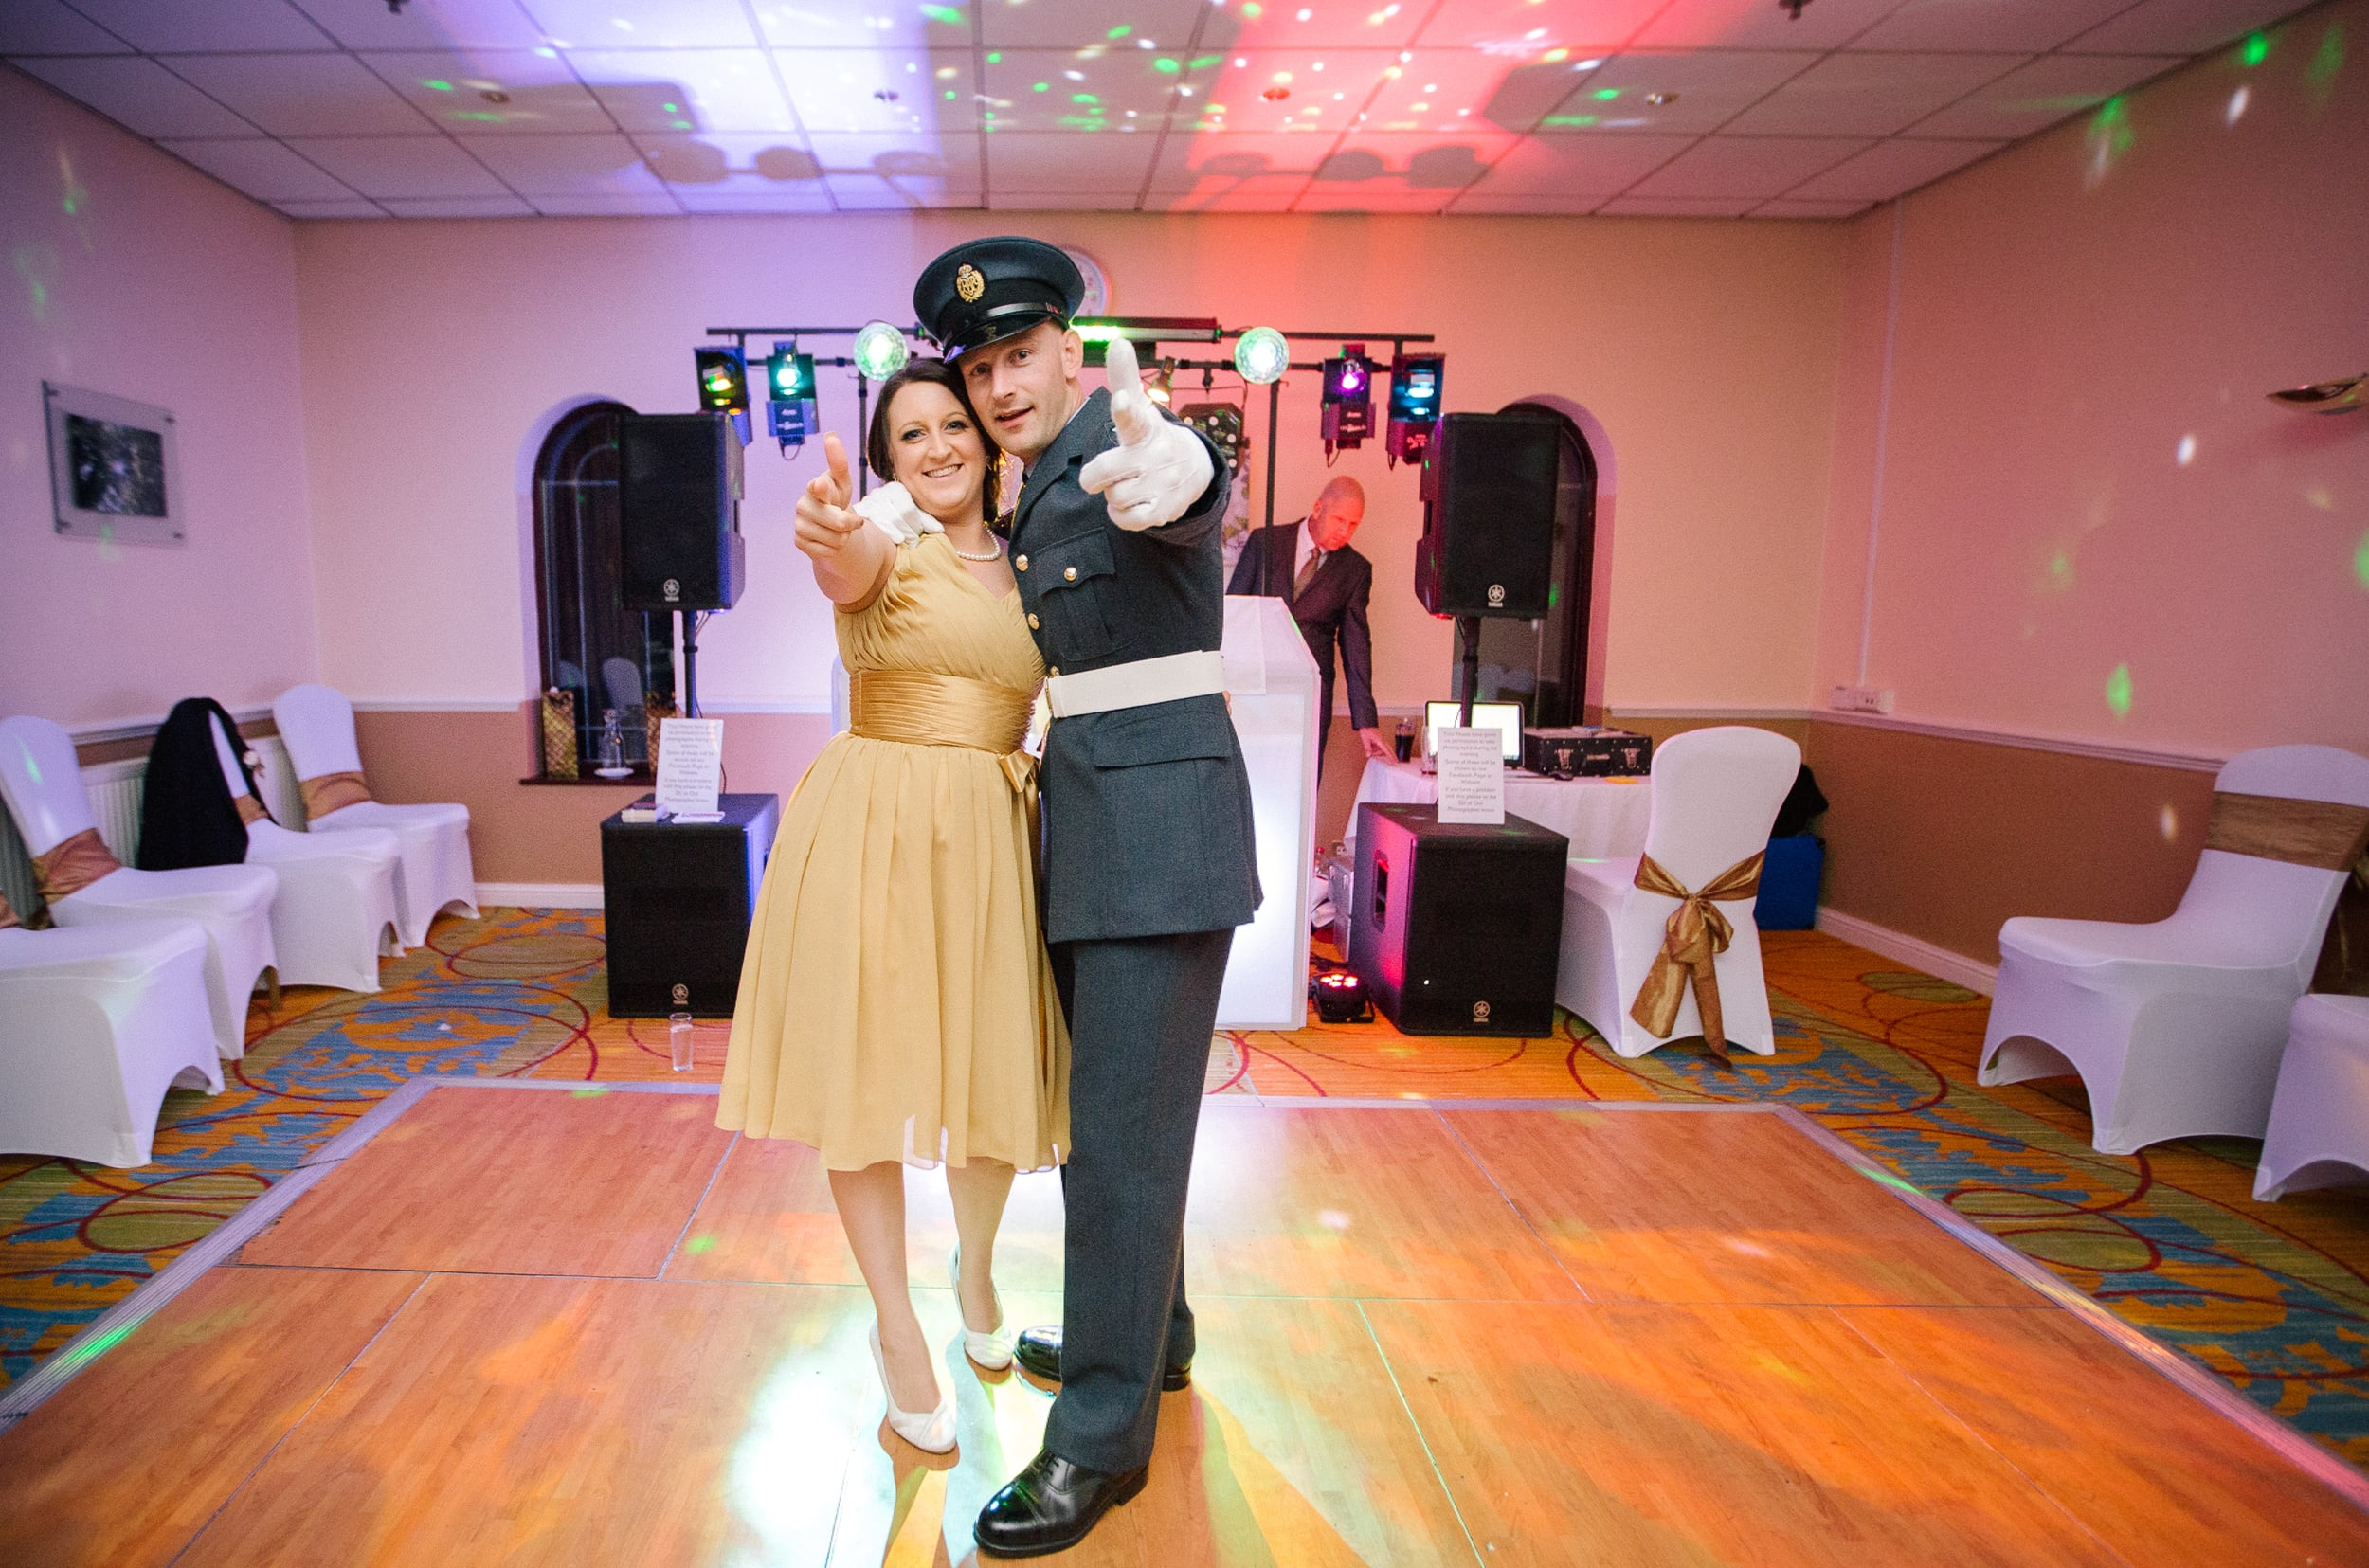 portsmouth wedding hampshire golf club party 3